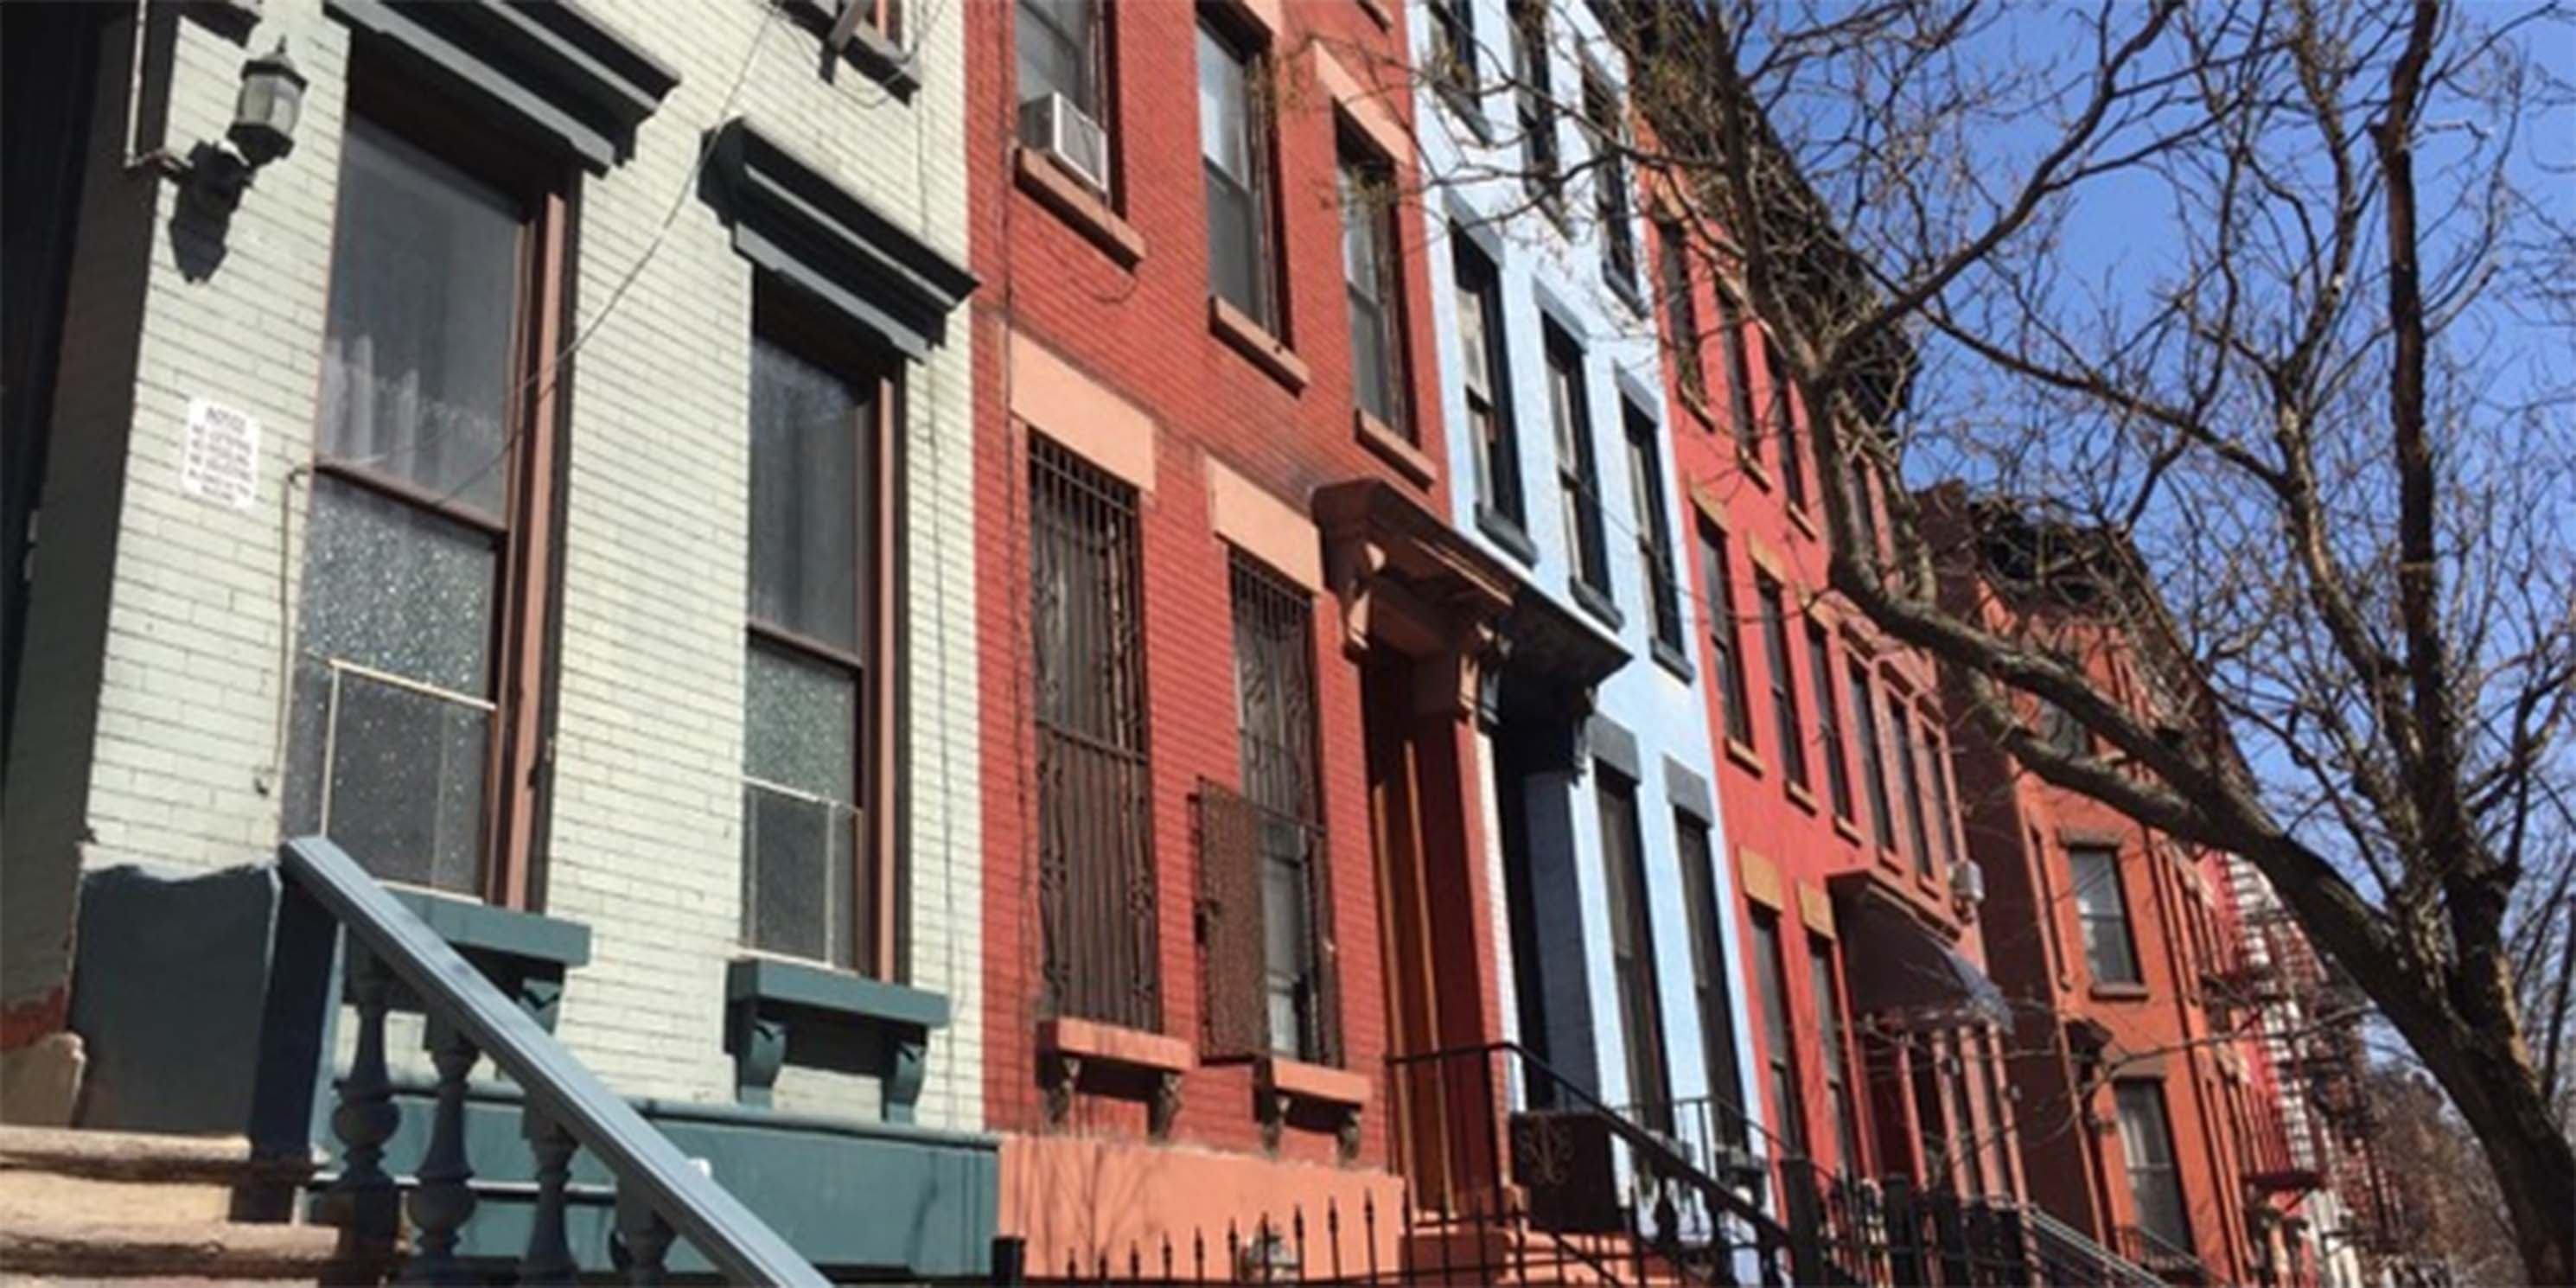 row houses on 117th Street in East Harlem